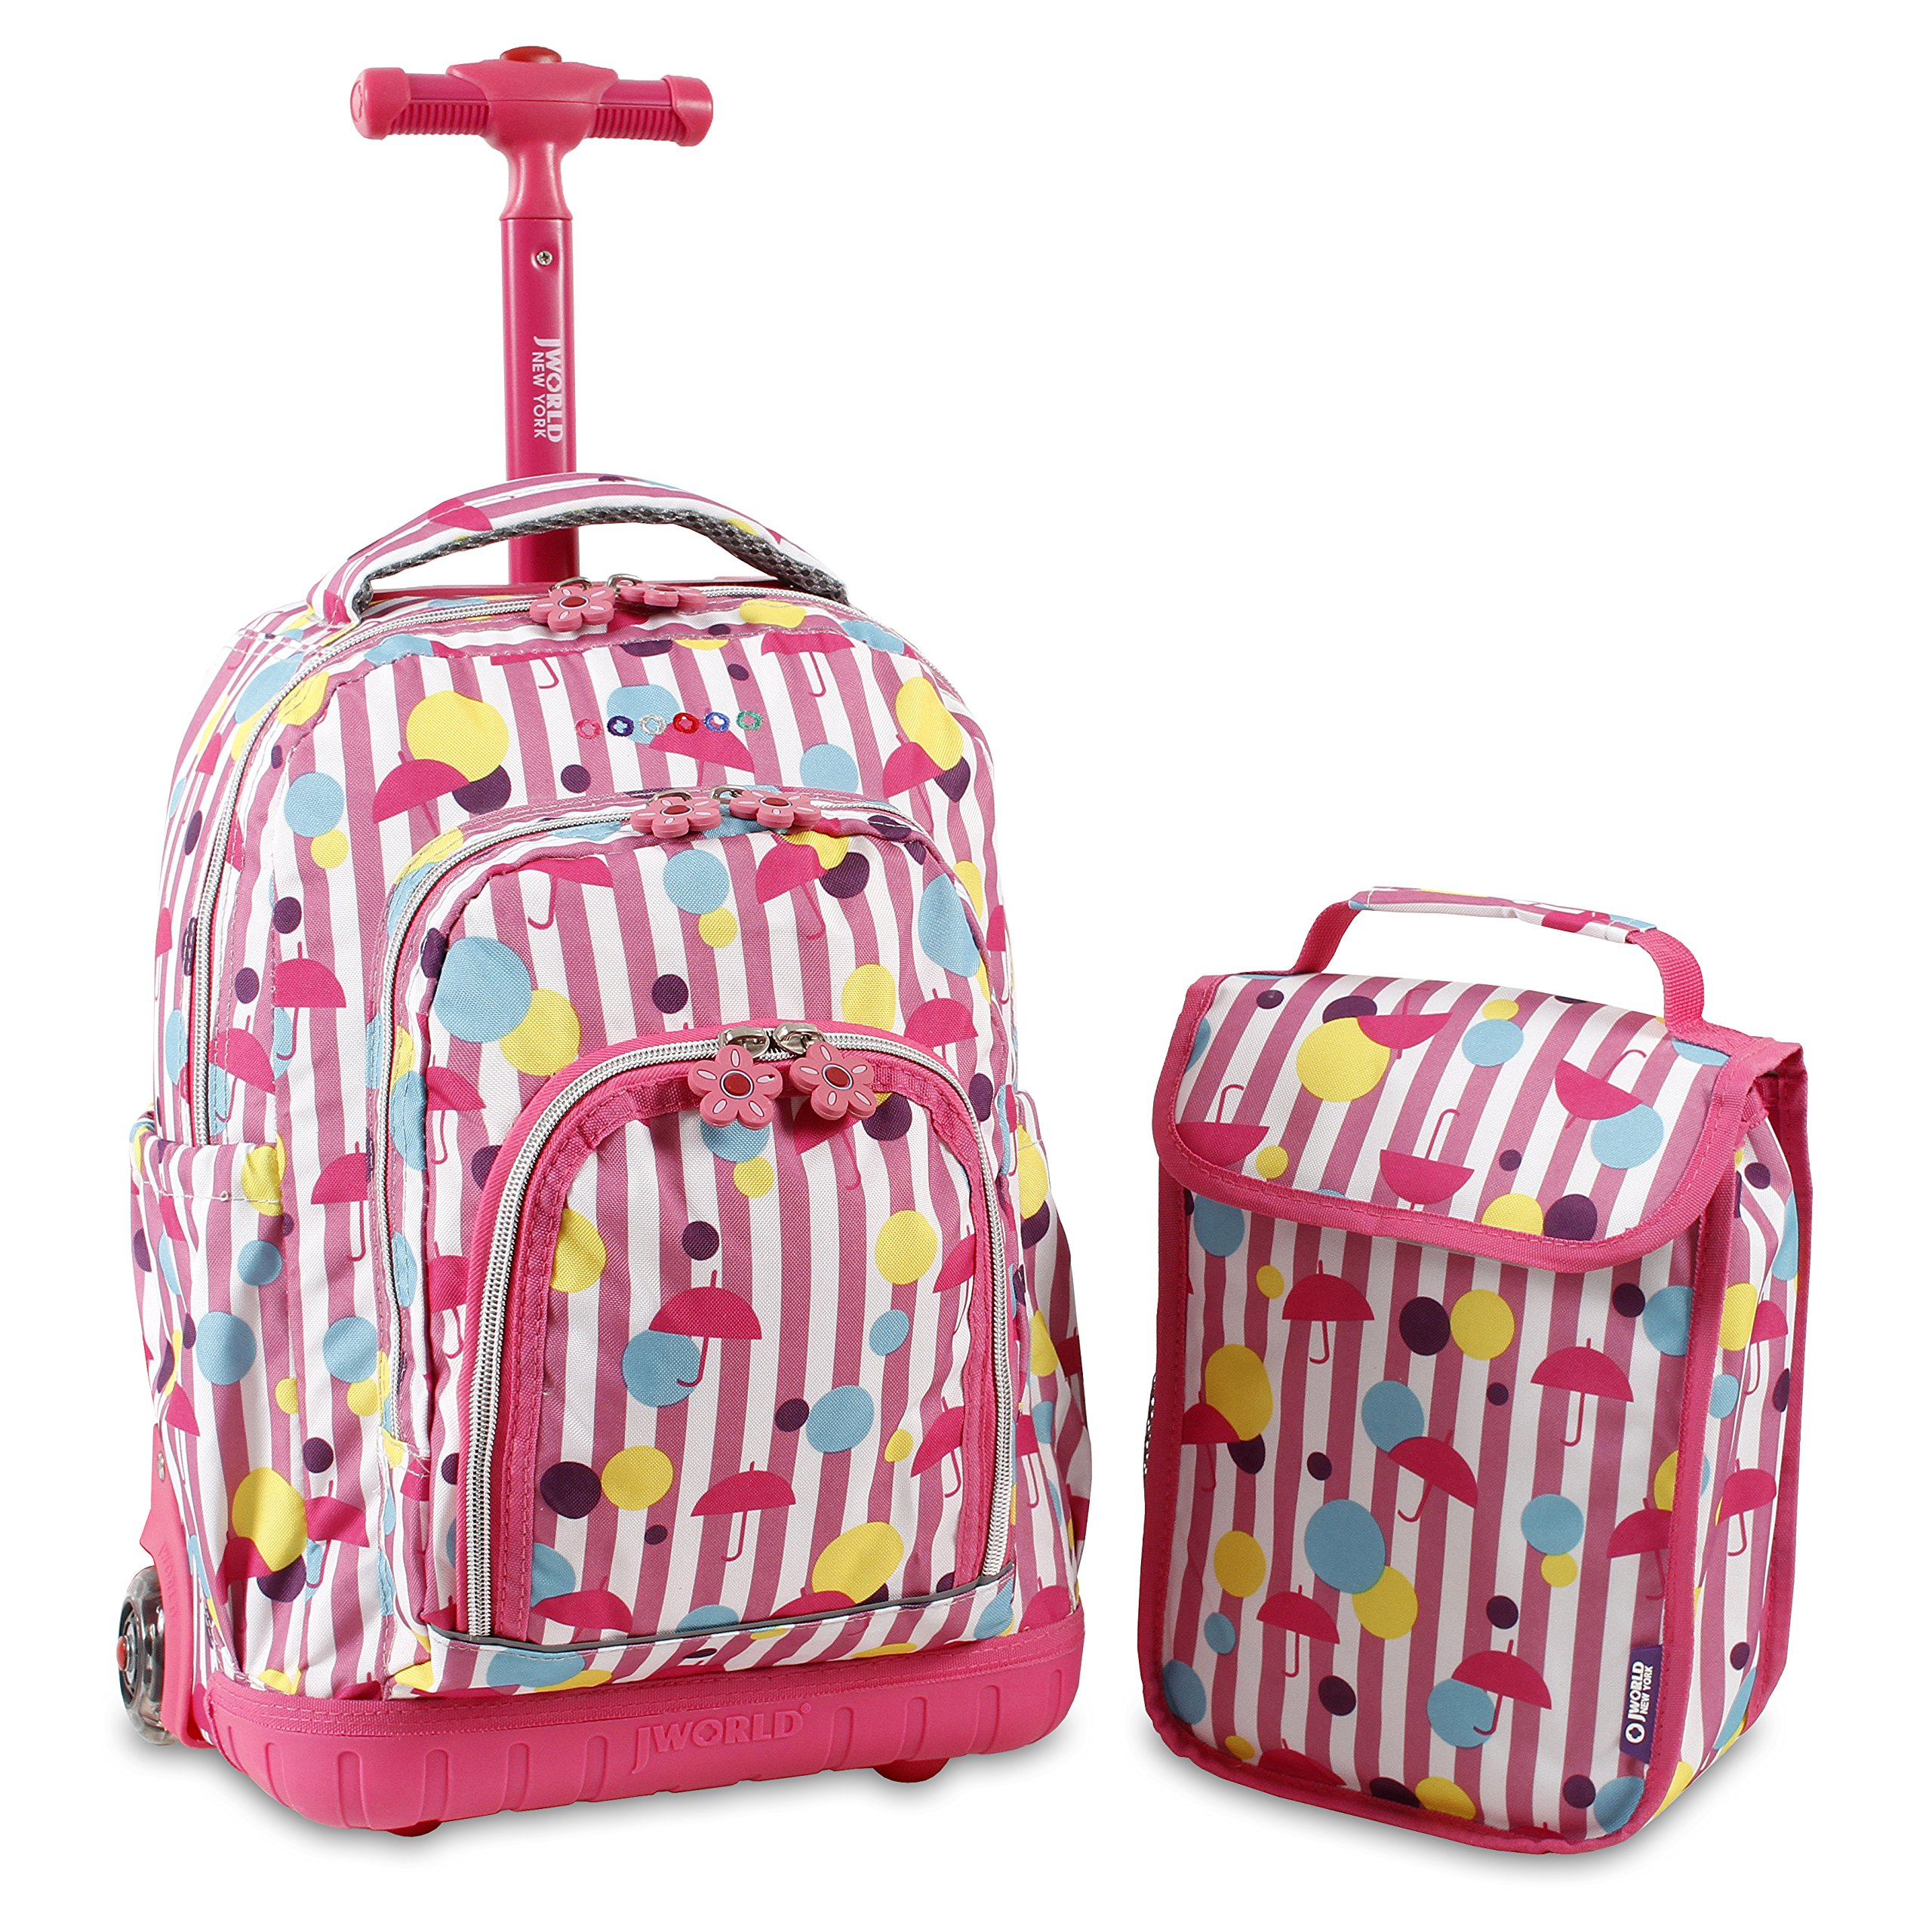 J World New York Lollipop Kids' Rolling Backpack with Lunch Bag, Rain, One Size